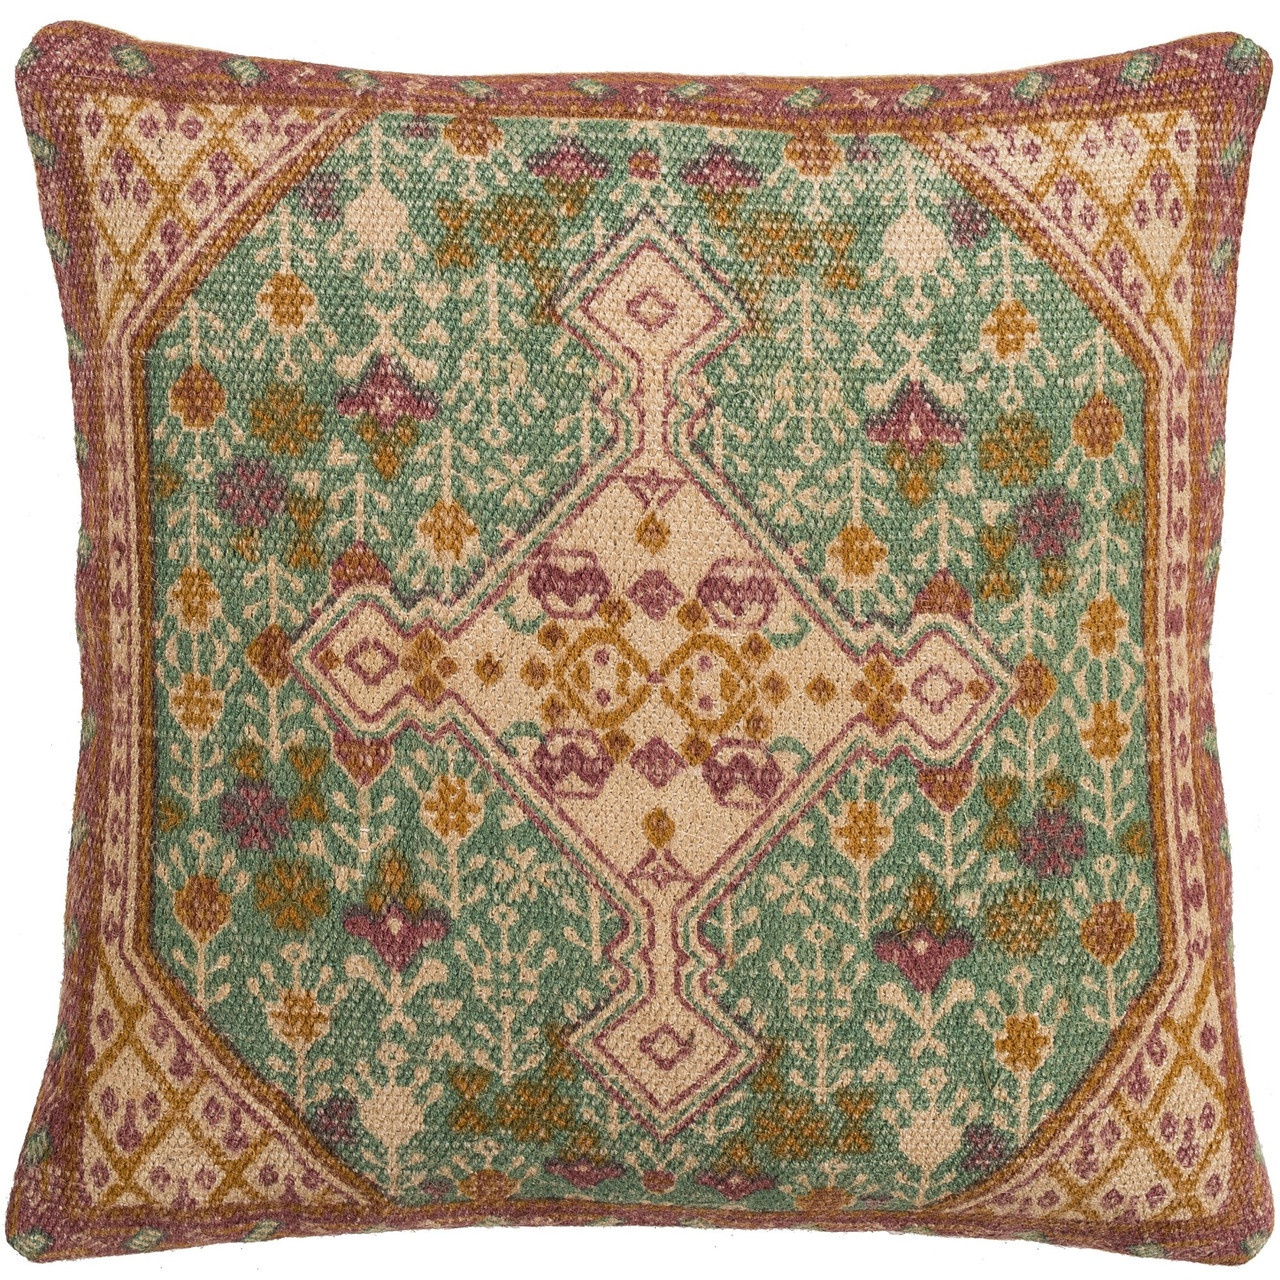 20 beige and teal green oriental medallion pattern square throw pillow cover with knife edge